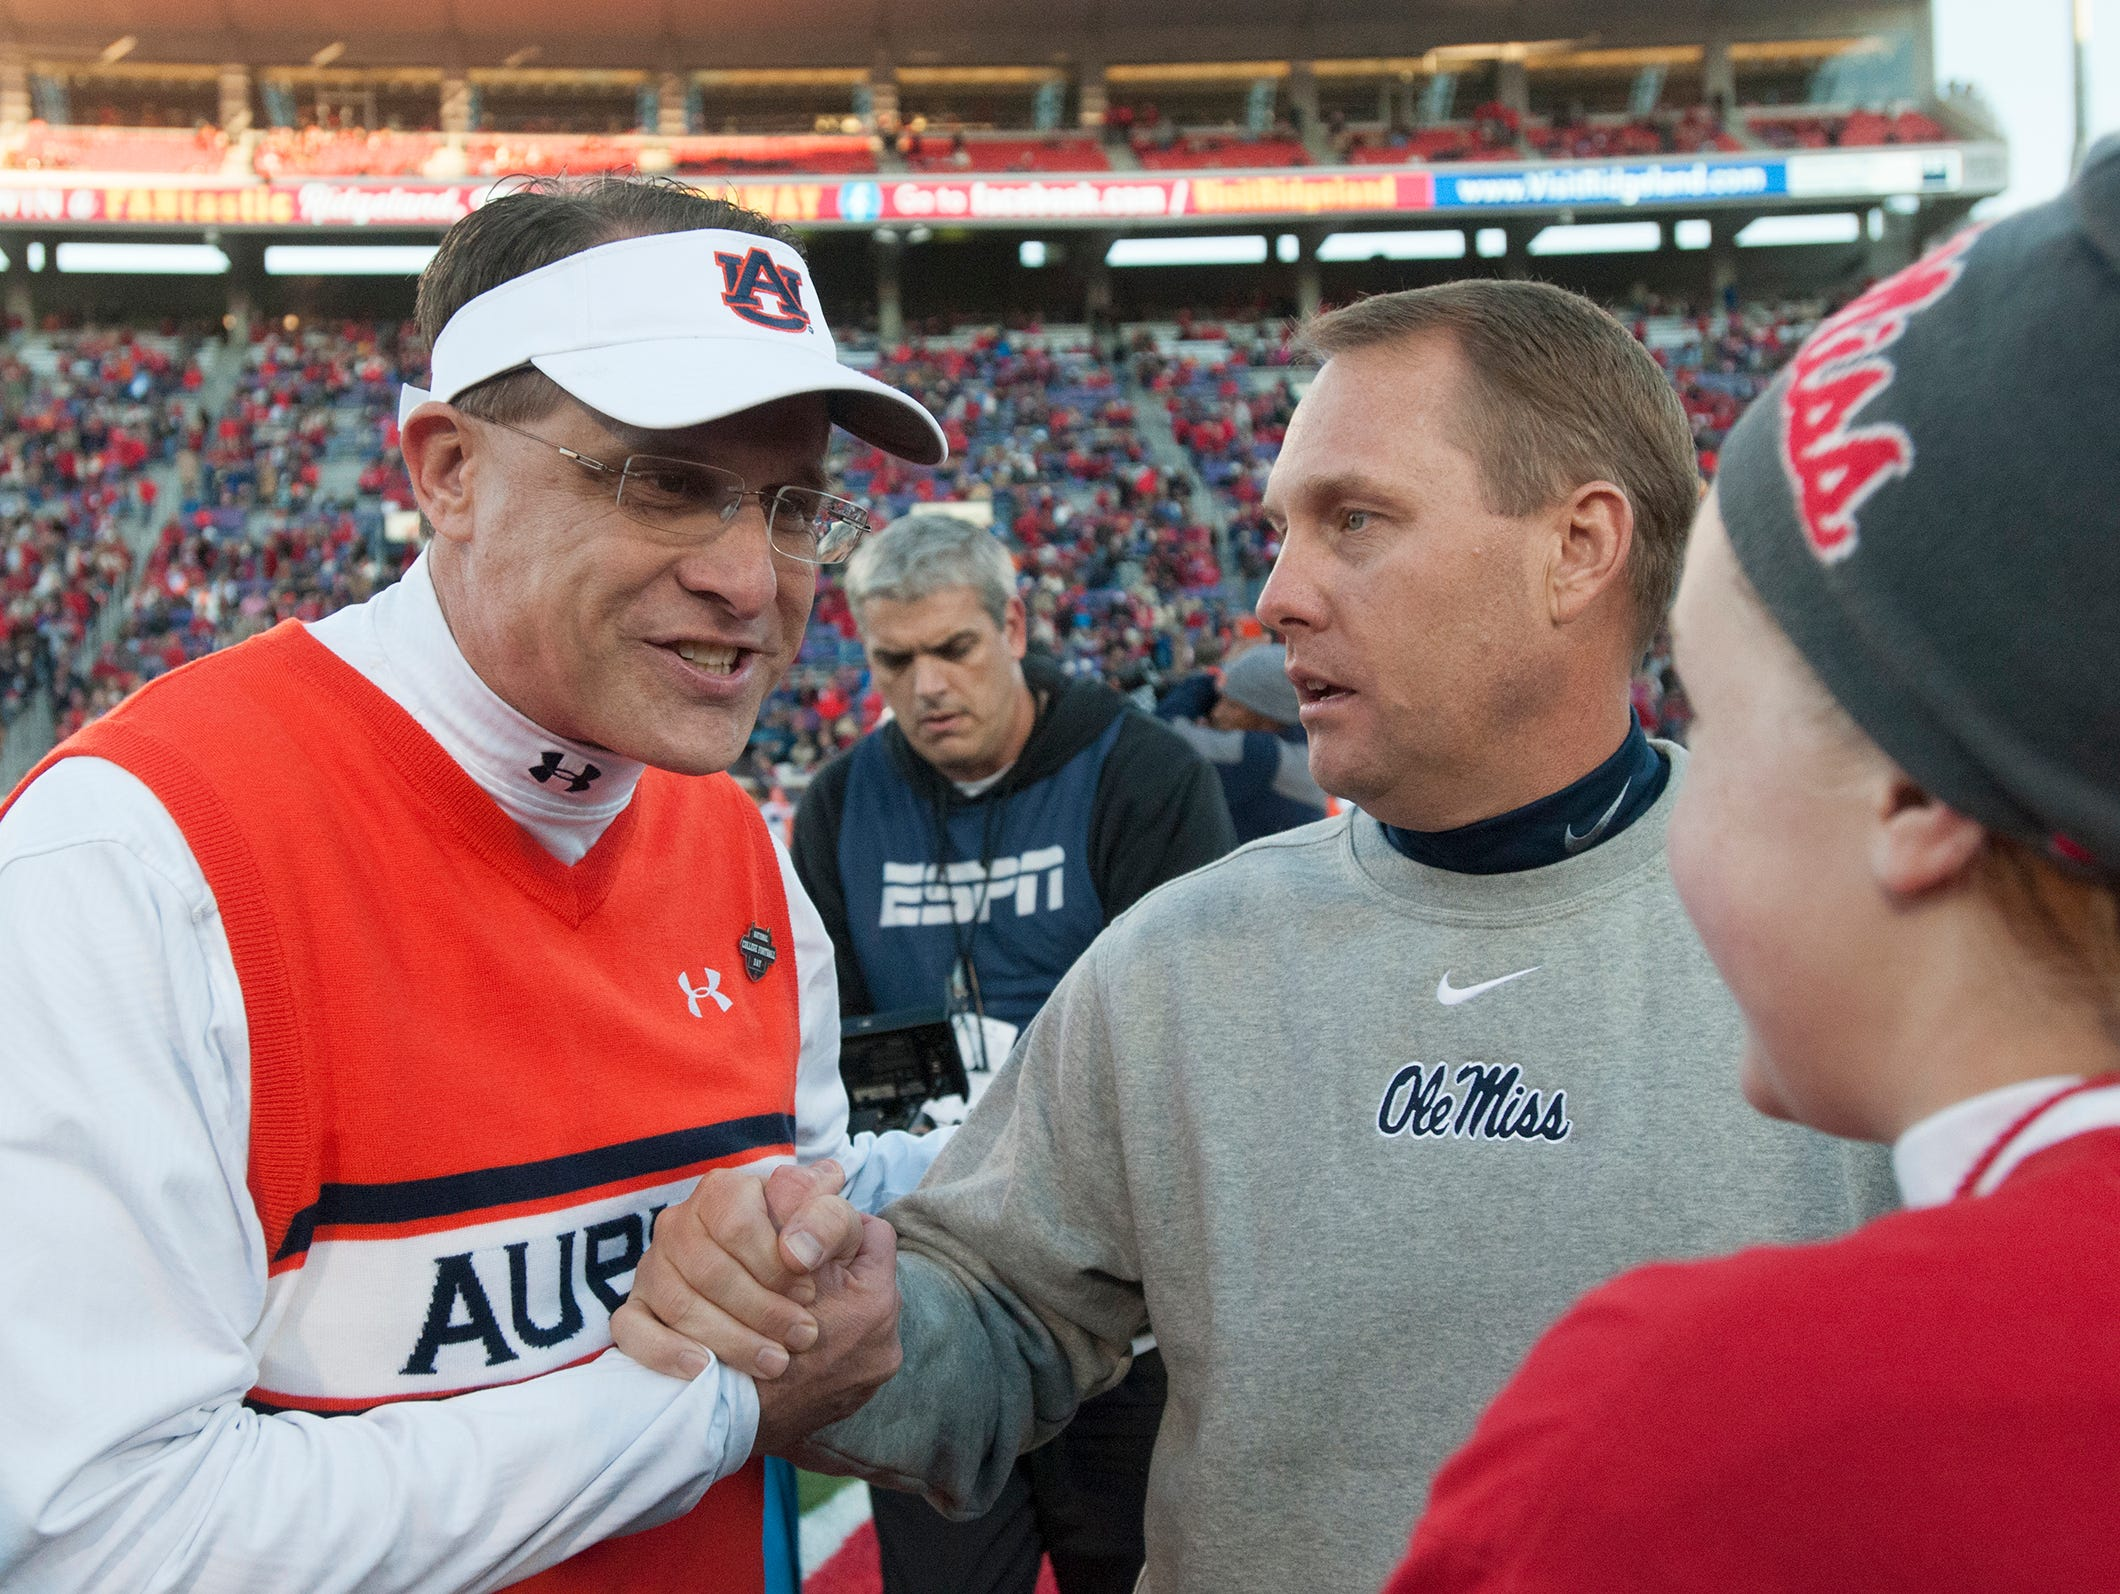 Auburn coach Gus Malzahn shakes Mississippi coach Hugh Freeze's hand as he says buy to Freeze's daughter, Reagan Freeze, before the NCAA football at University of Mississippi in Oxford, Miss., on Saturday, Nov. 1, 2014.